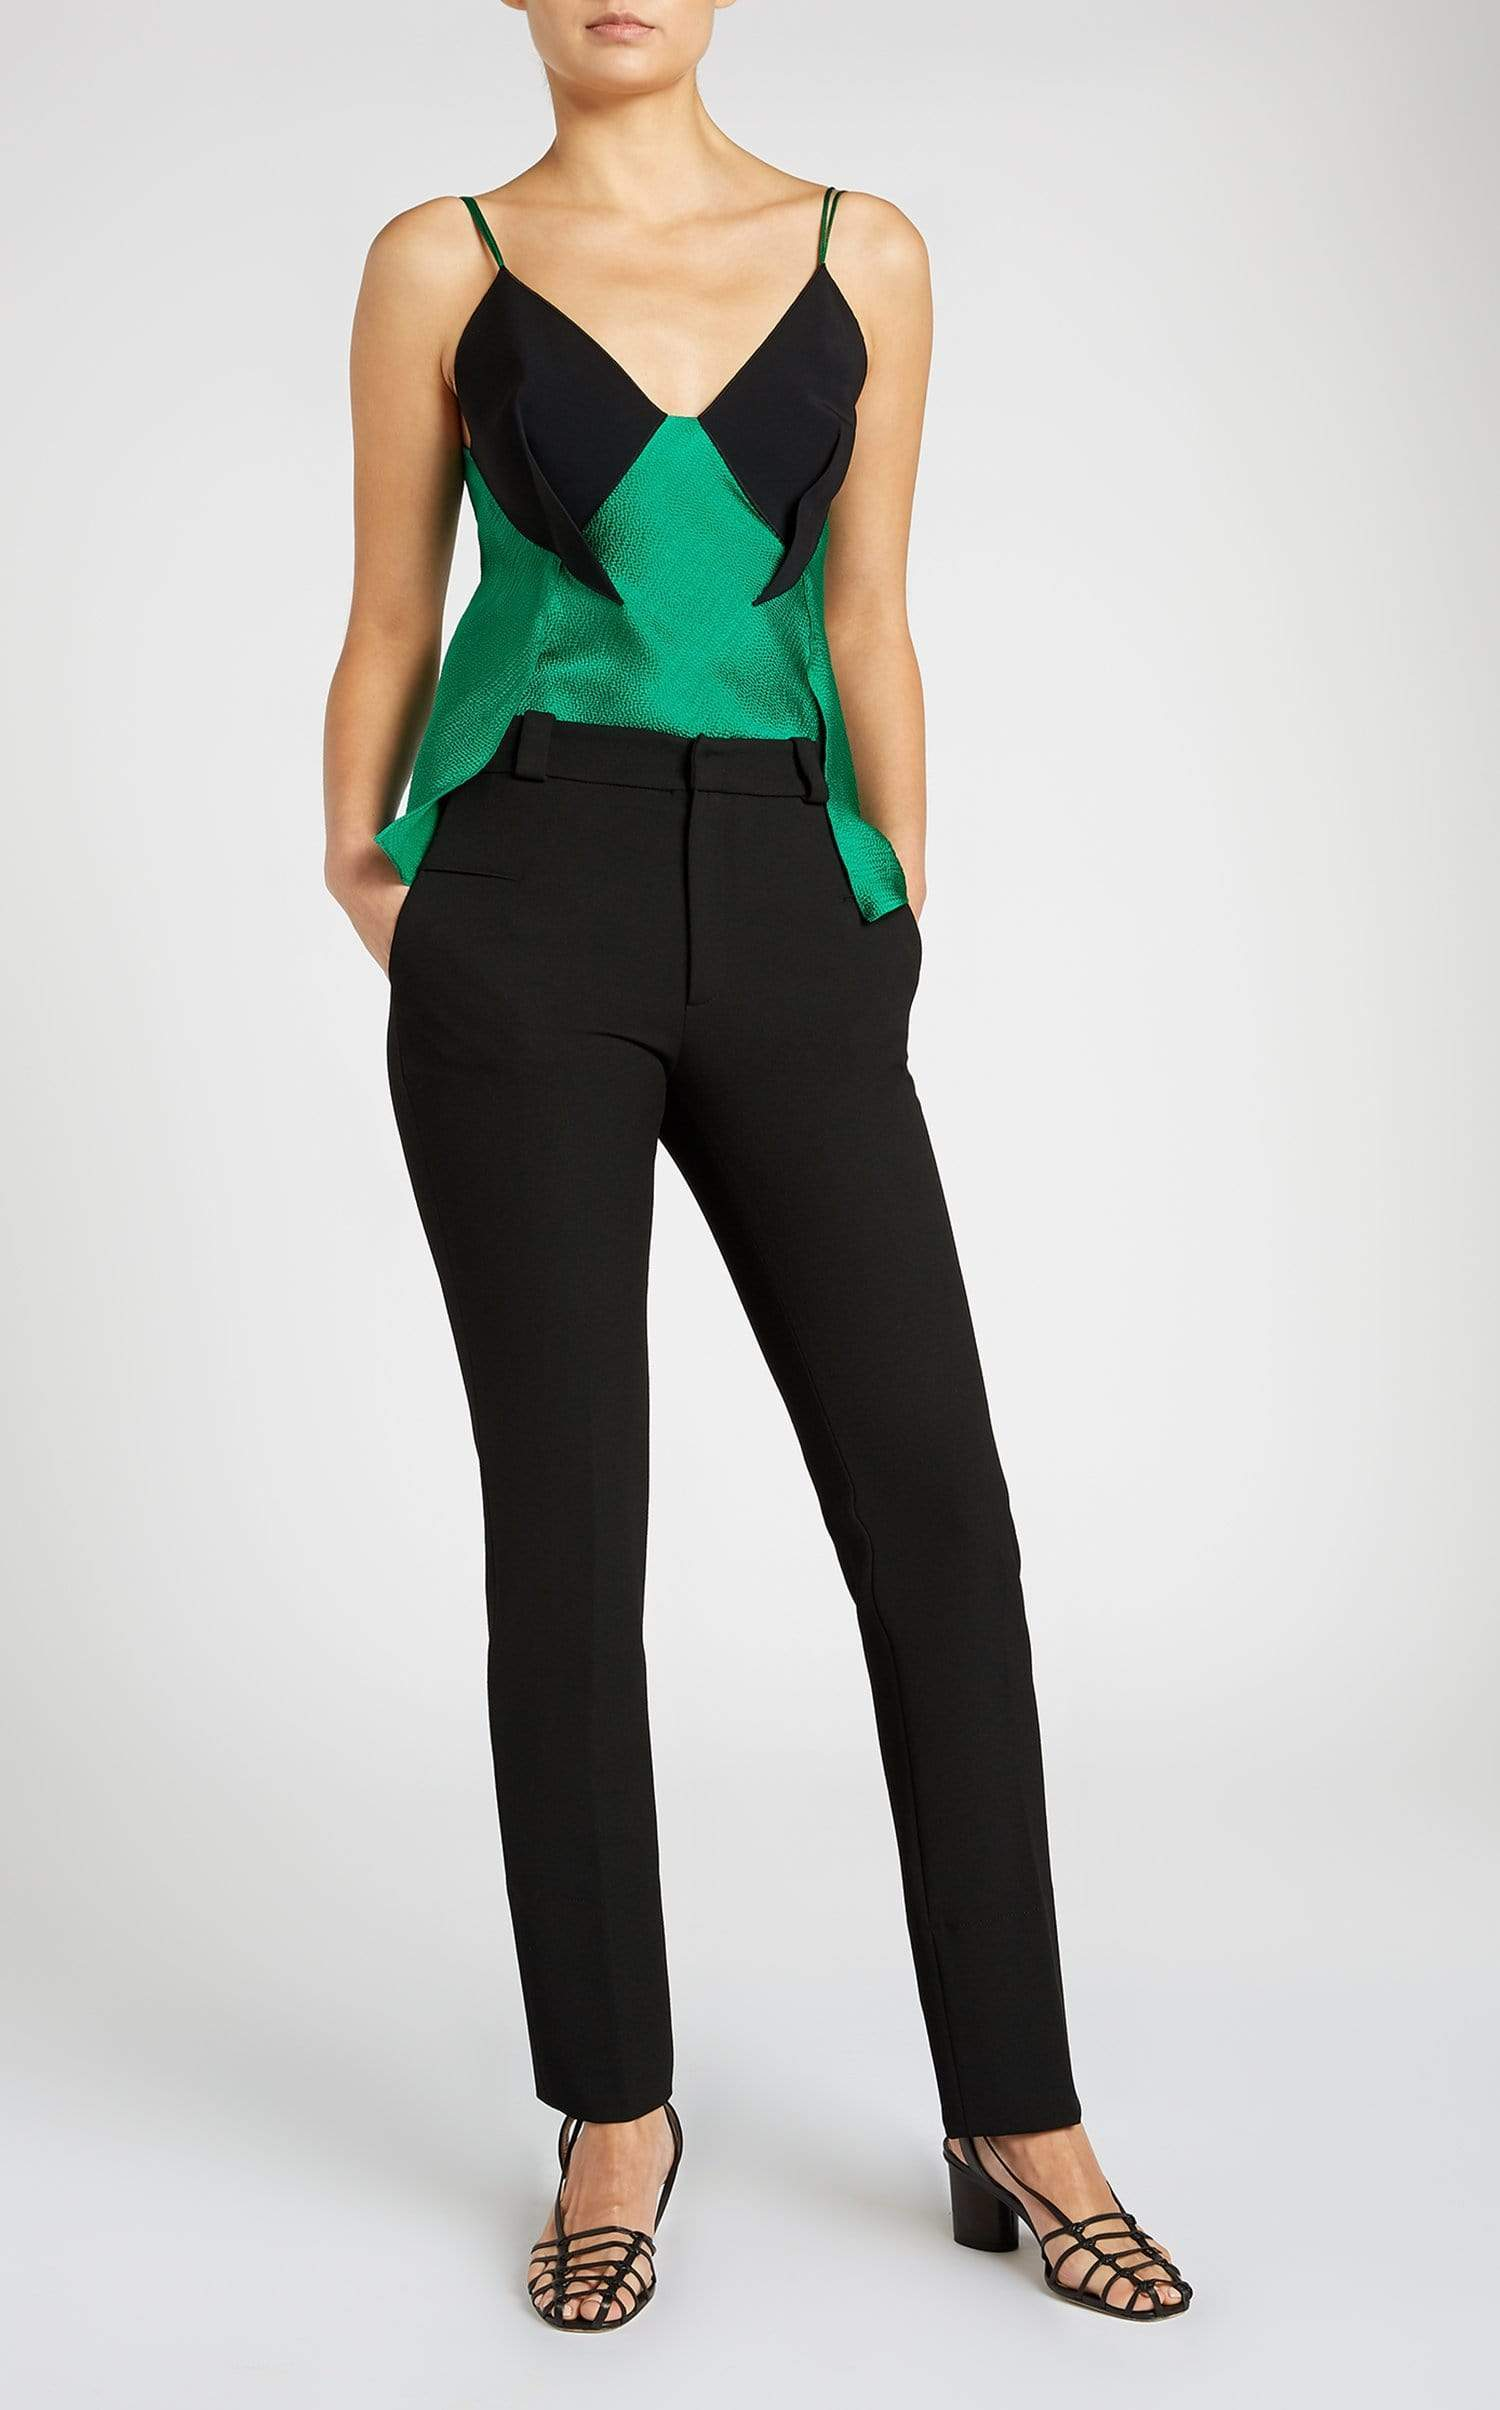 Fritz Top In Emerald/Black from Roland Mouret